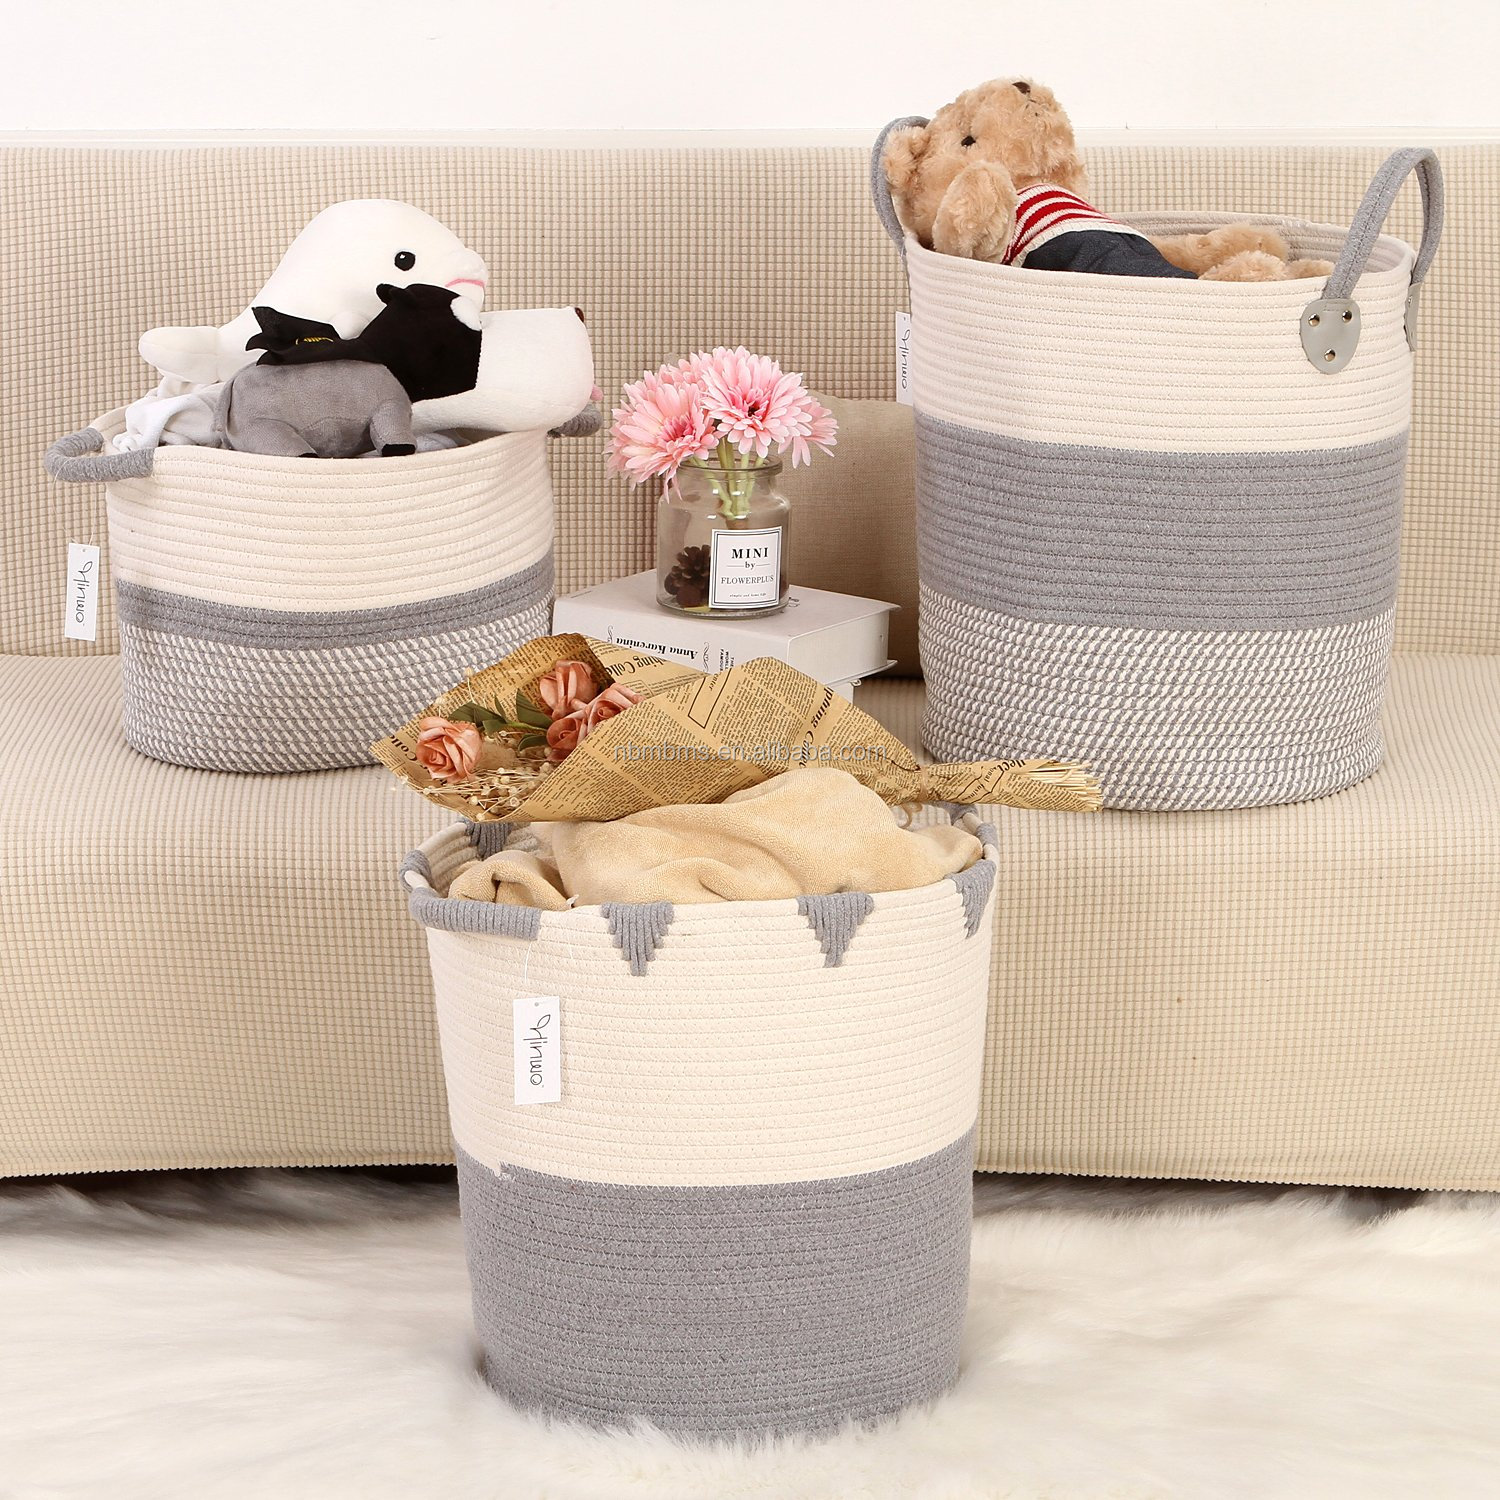 QJMAX Collapsible Laundry Cotton Rope Storage Basket Bin Container Organizer With Handles